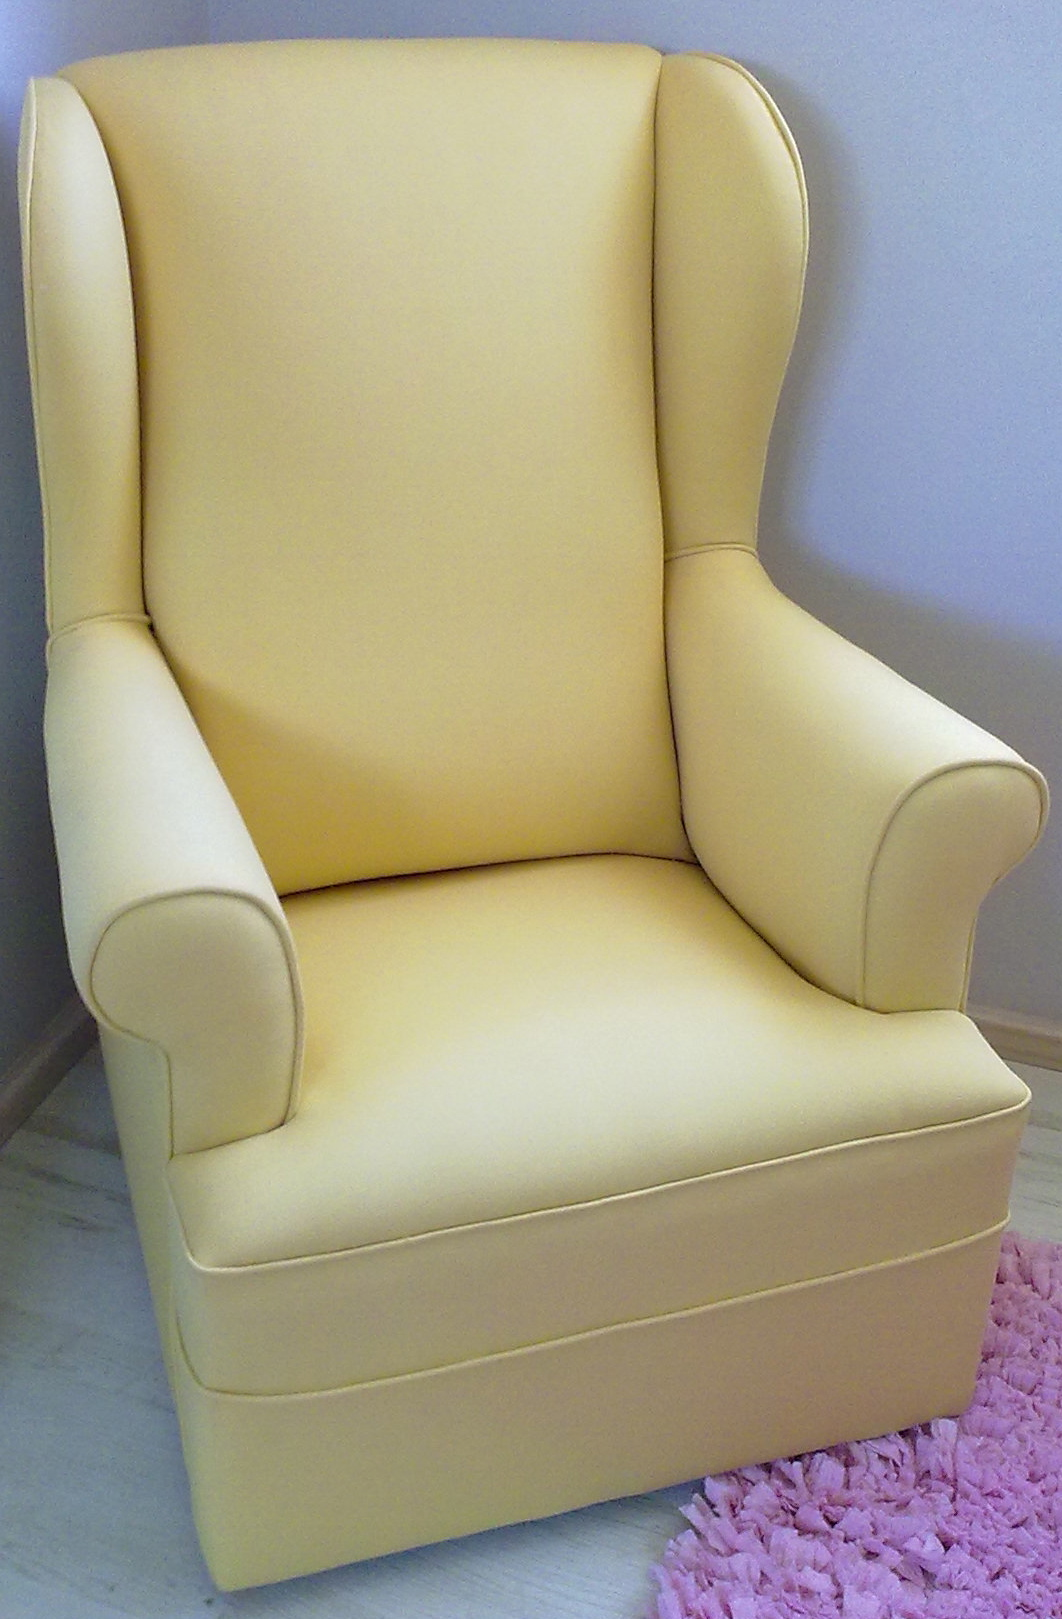 wingback rocking chair cape town ski chairlift chairs for sale nursing upholstery